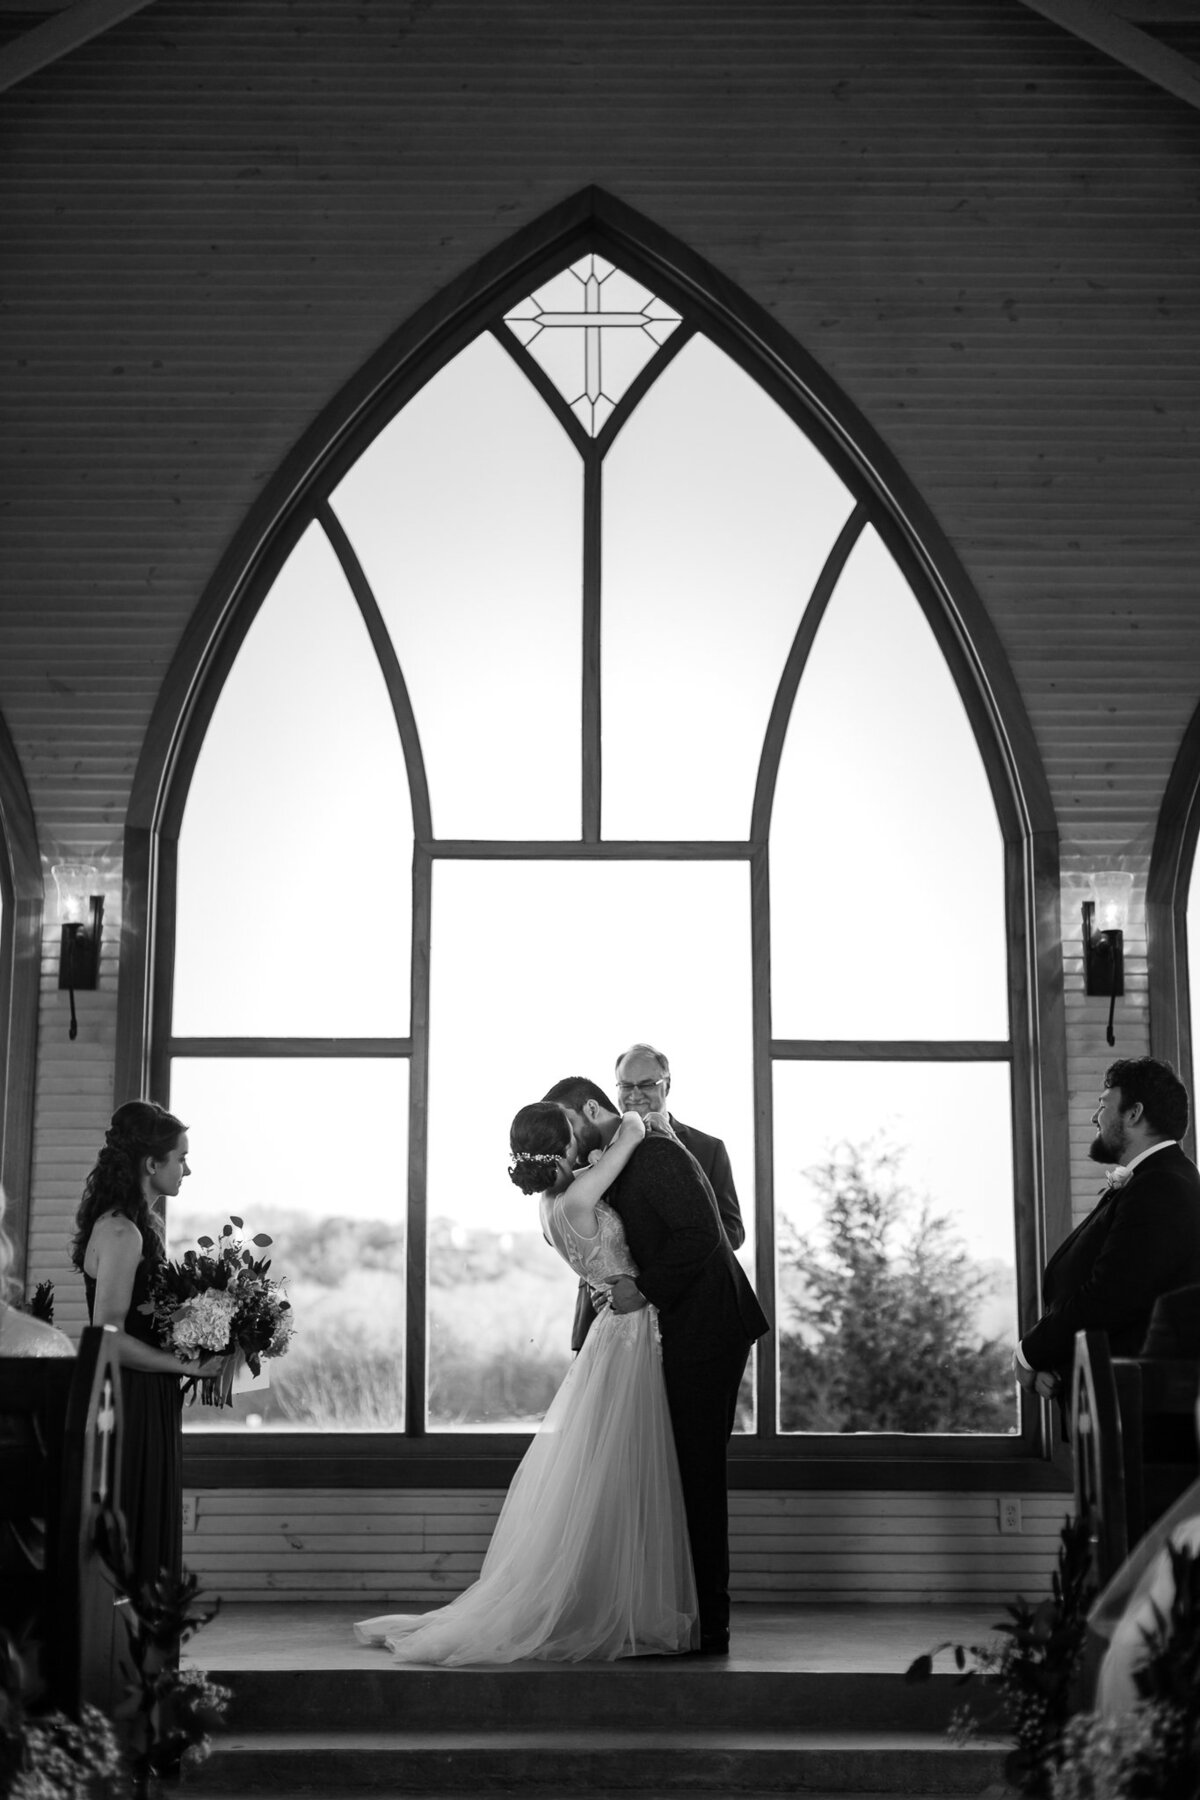 madeline_c_photography_dallas_wedding_photographer_megan_connor-71